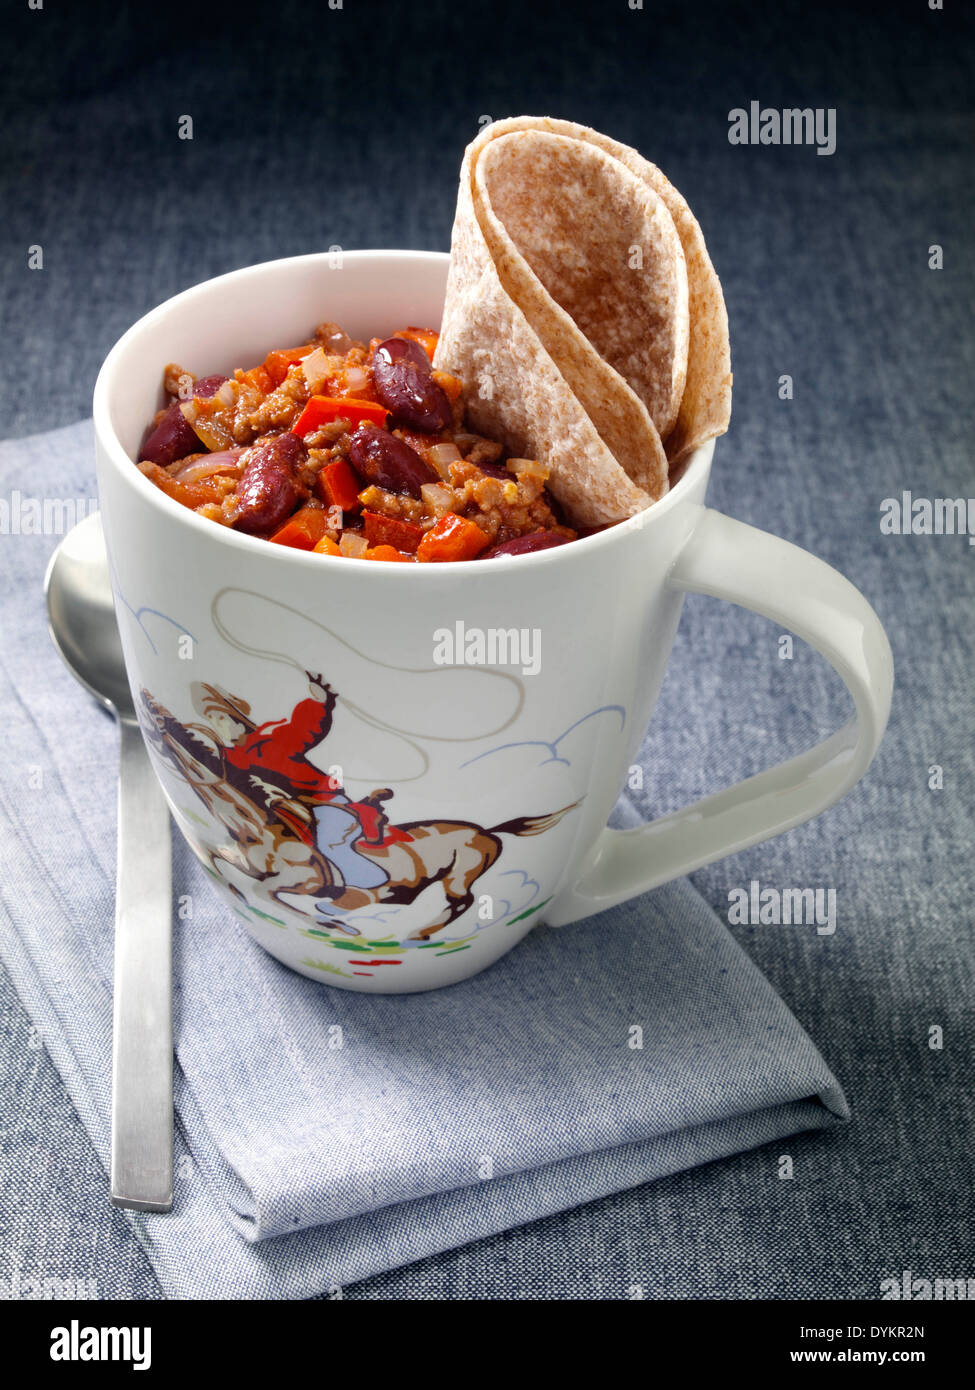 Chilli beef microwaved in a mug - Stock Image